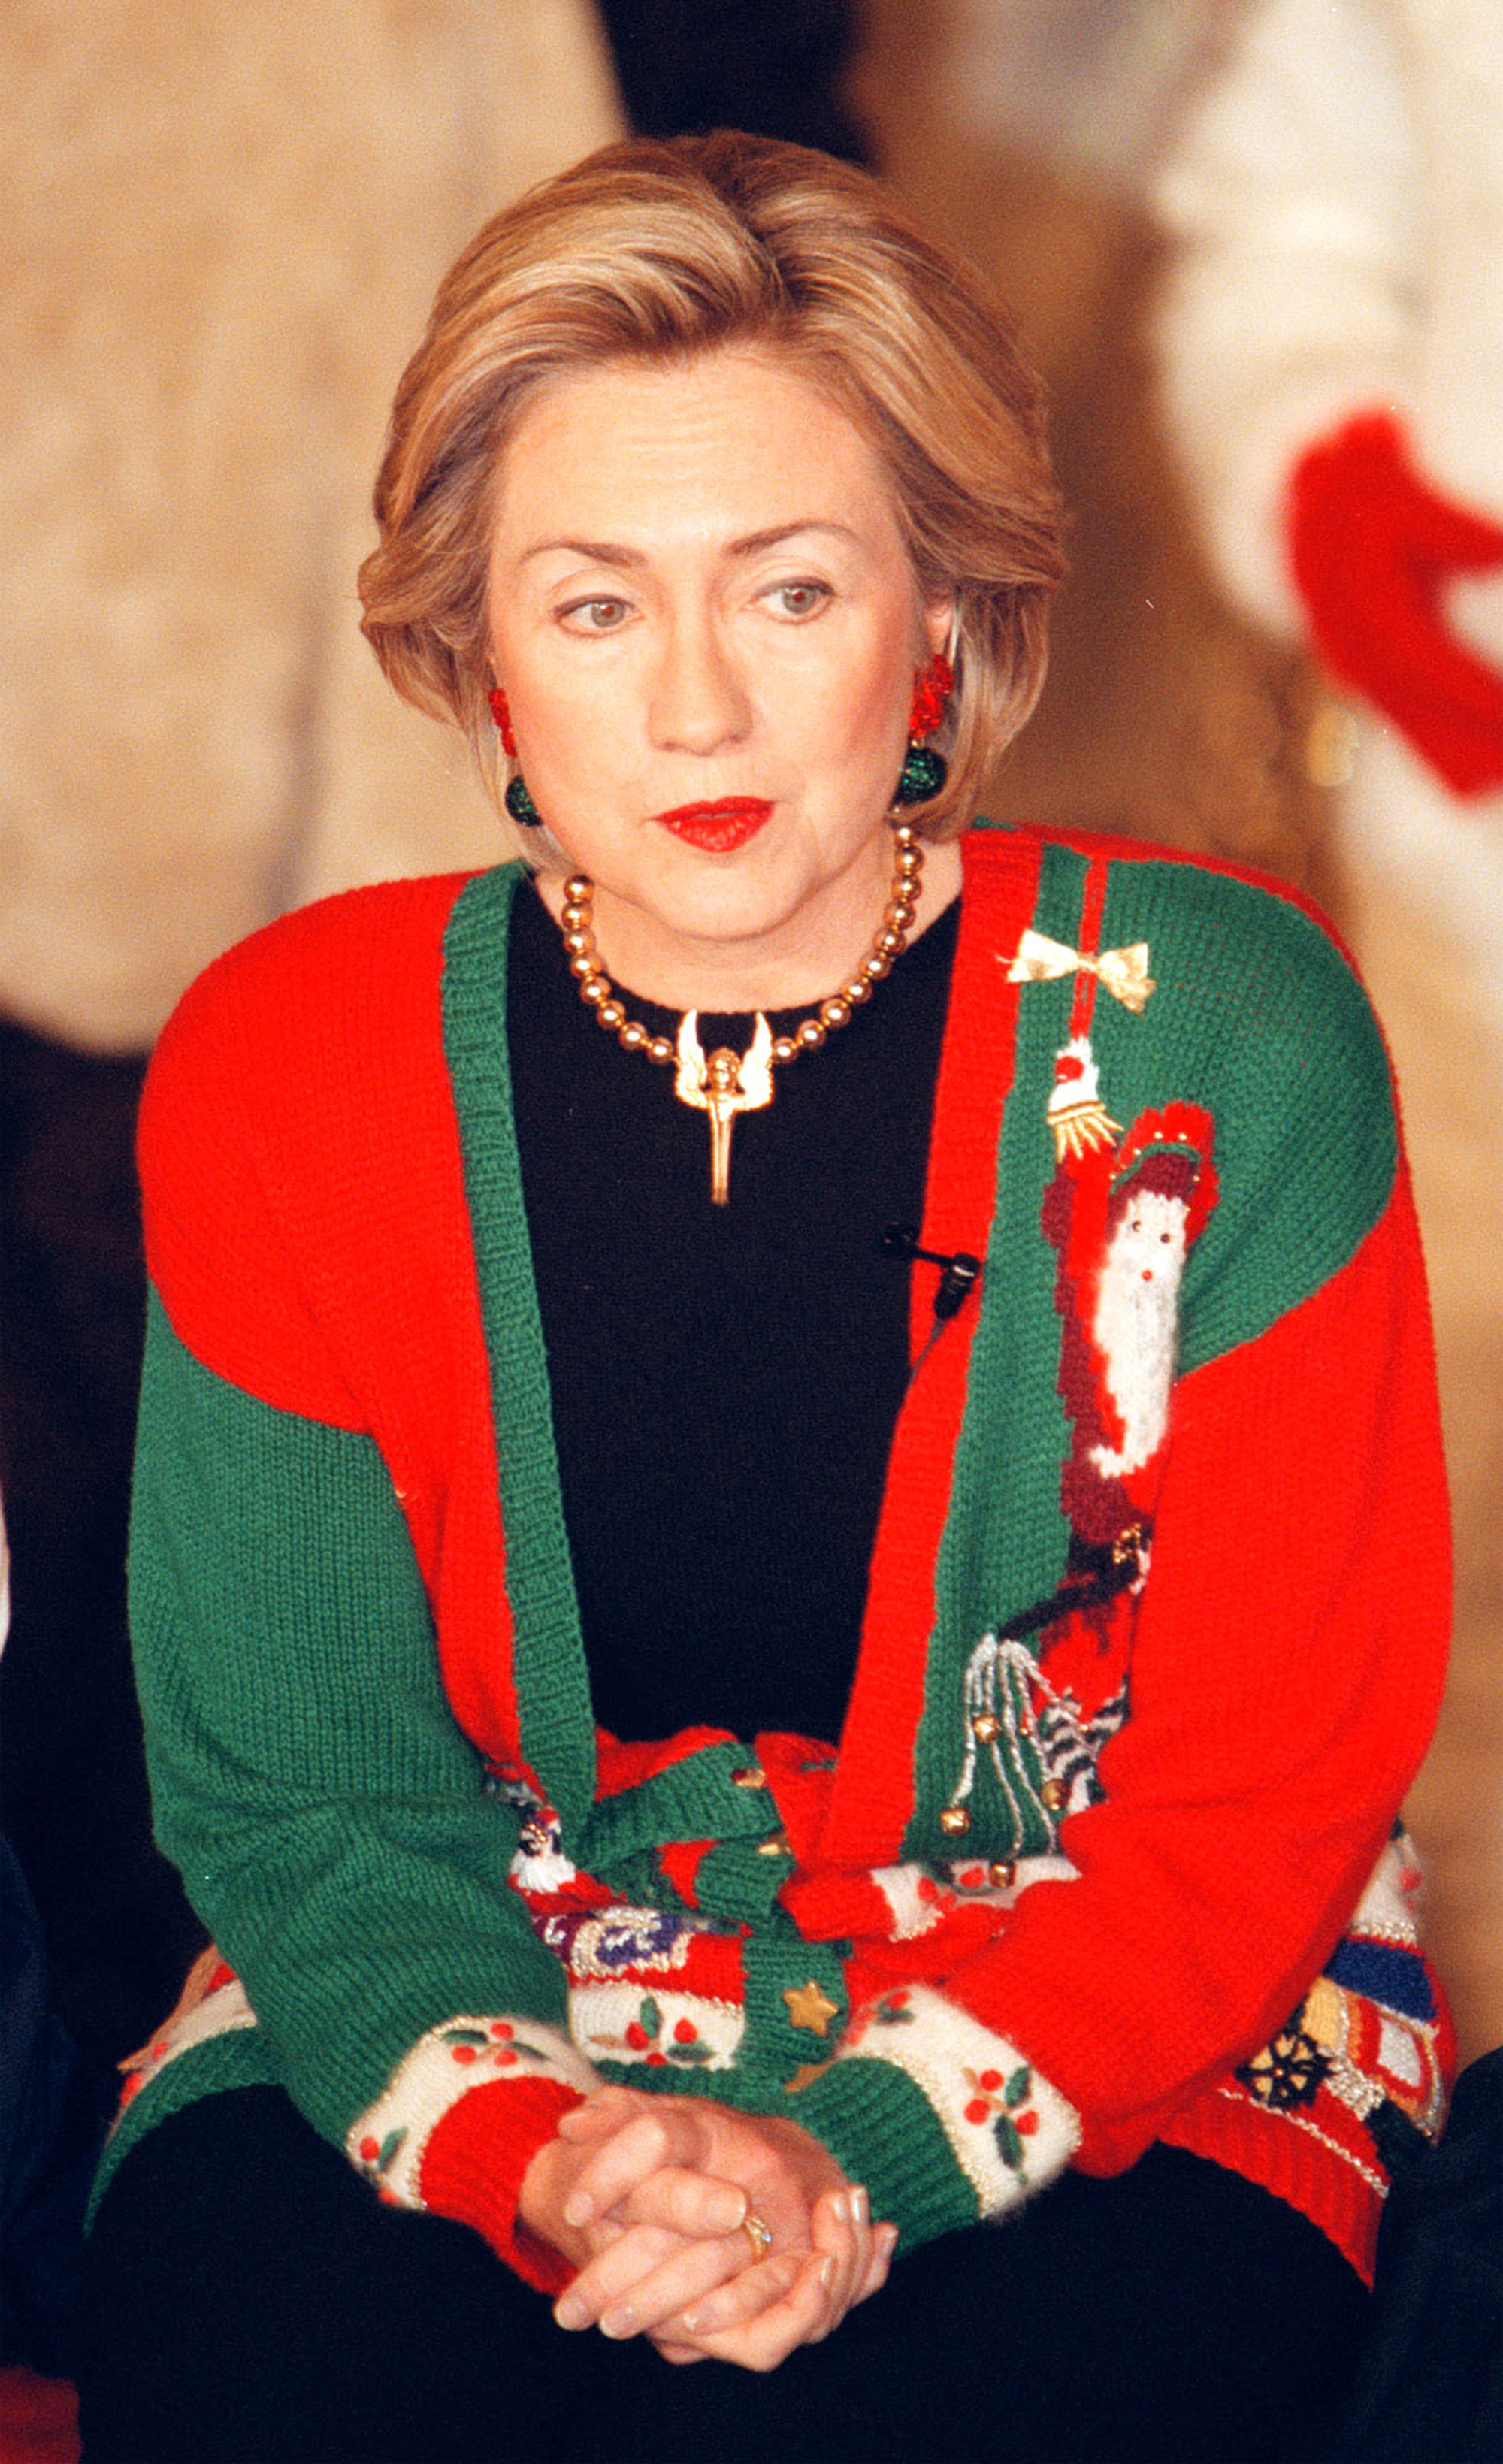 """celebrity ugly christmas sweater - 96 Normal 0 false false false EN-US X-NONE X-NONE /* Style Definitions */ table. MsoNormalTable {mso-style-name:""""Table Normal""""; mso-tstyle-rowband-size:0; mso-tstyle-colband-size:0; mso-style-noshow:yes; mso-style-priority:99; mso-style-parent:""""""""; mso-padding-alt:0in 5.4pt 0in 5.4pt; mso-para-margin:0in; mso-para-margin-bottom:.0001pt; mso-pagination:widow-orphan; font-size:12.0pt; font-family:""""Calibri"""",sans-serif; mso-ascii-font-family:Calibri; mso-ascii-theme-font:minor-latin; mso-hansi-font-family:Calibri; mso-hansi-theme-font:minor-latin;} The former secretary of state sported a colorful cardigan while reading A Night Before Christmas to children at the White House with Bill Clinton in 1998."""